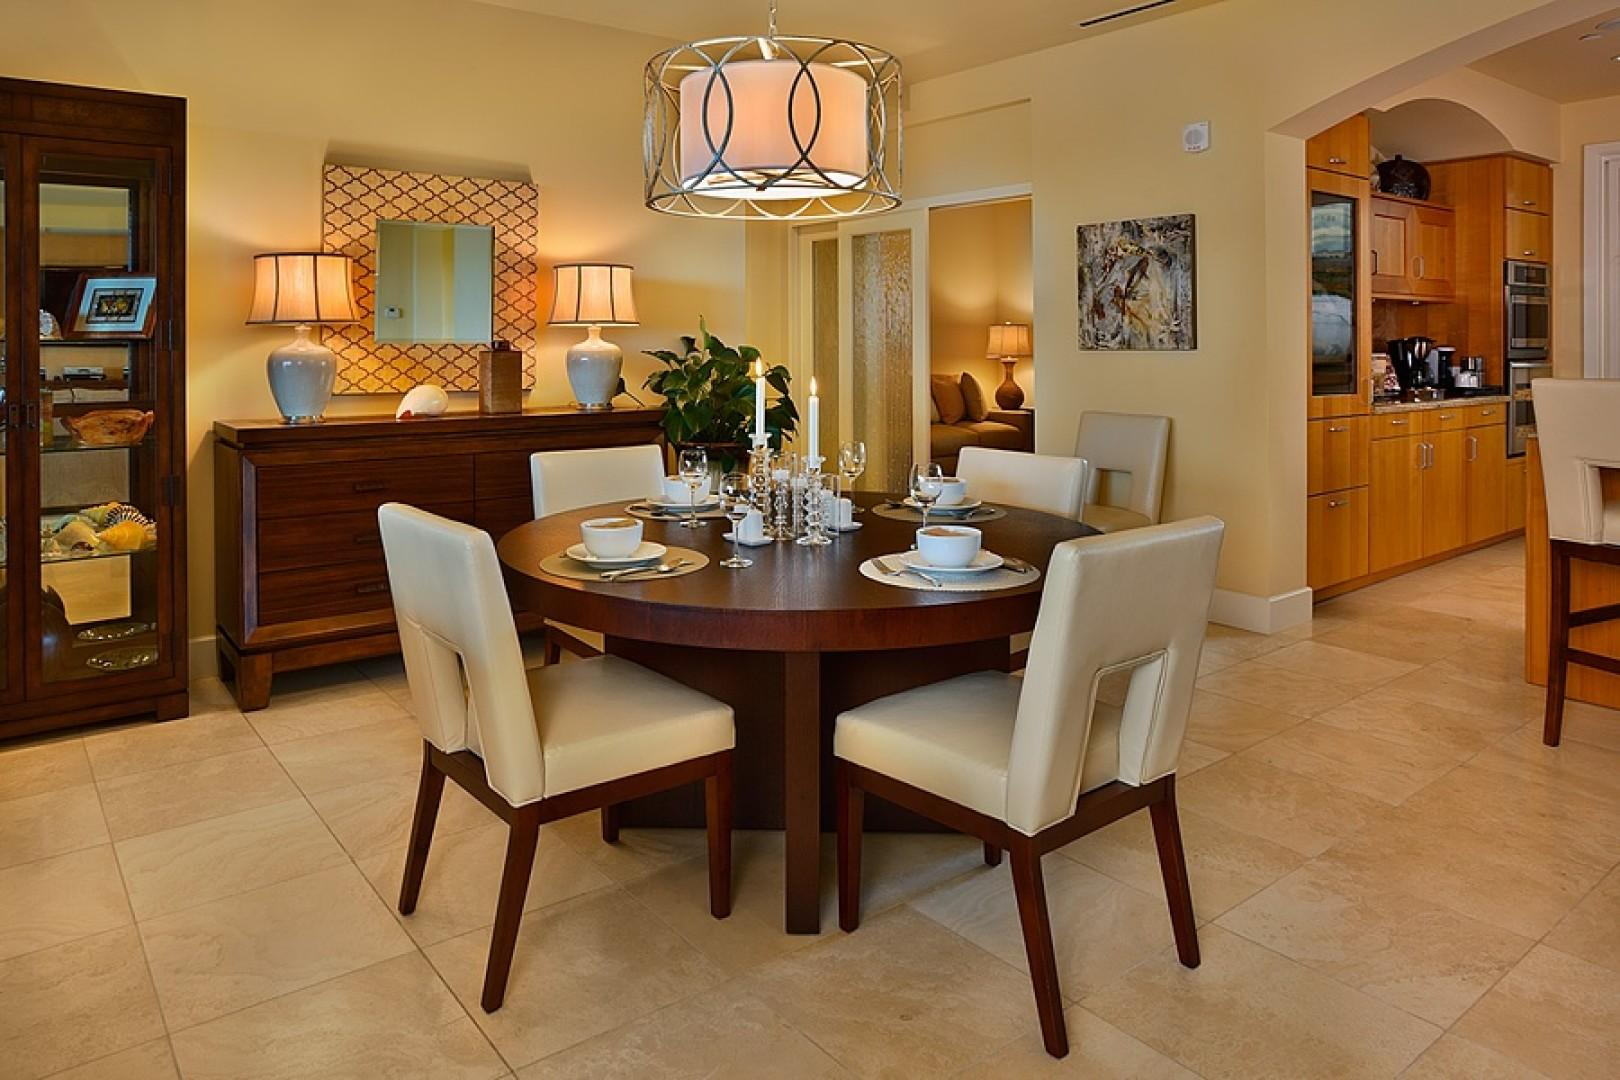 Sandy Surf Beautiful Interior and Dining Seats Six Guests